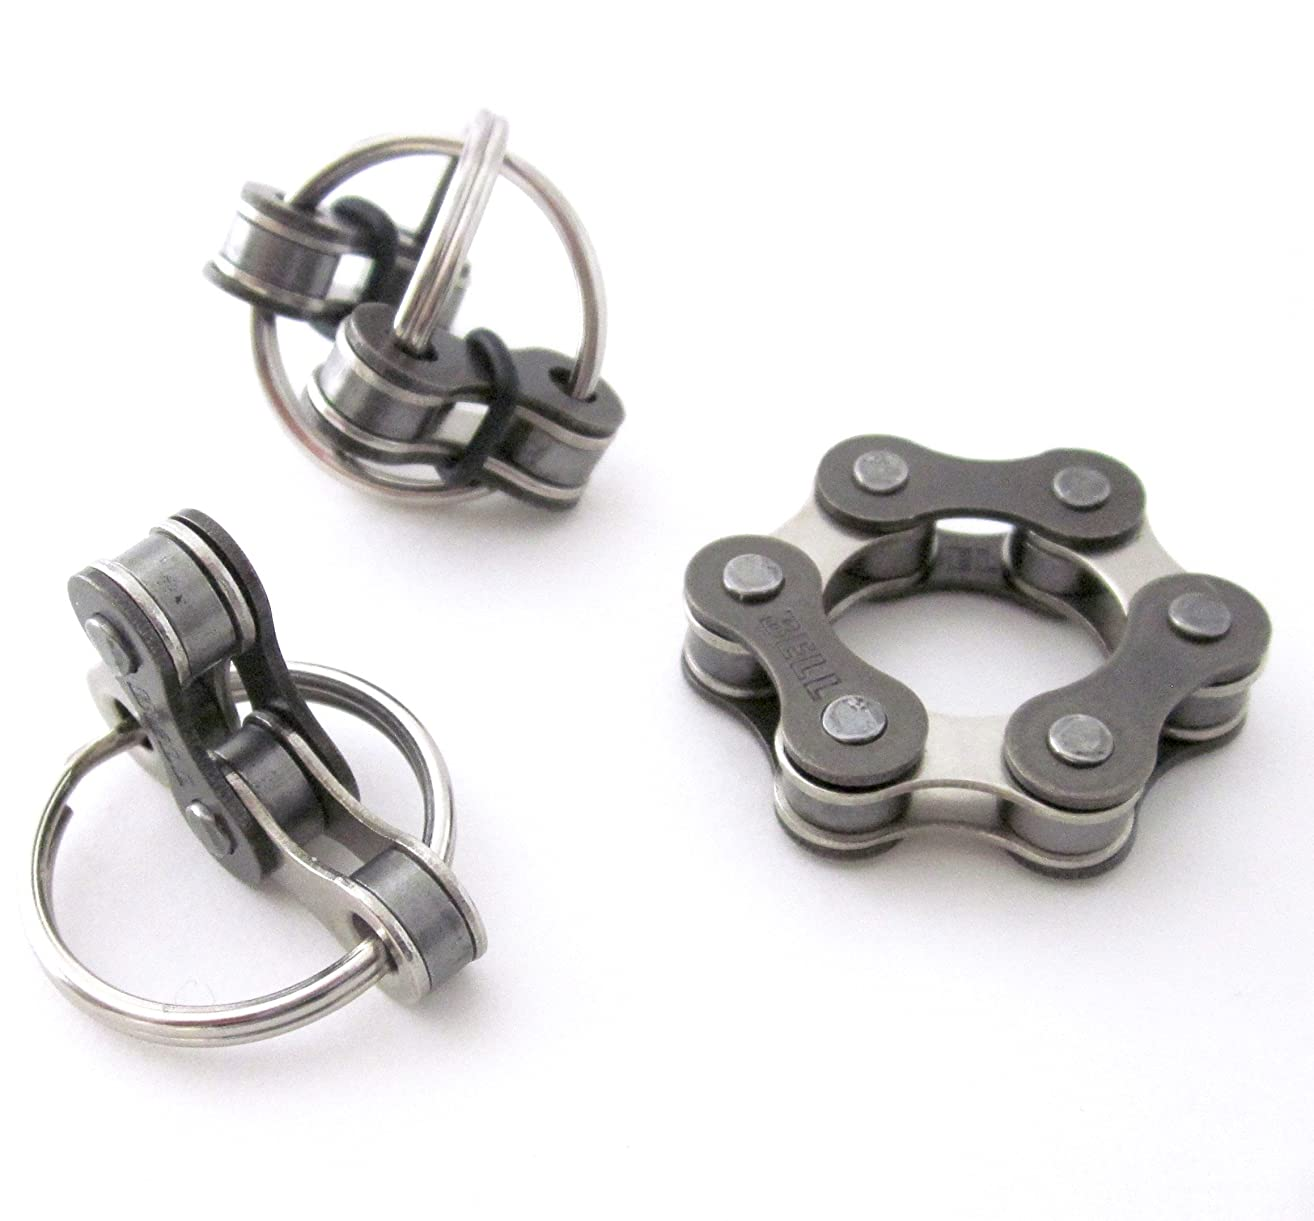 Set of 3 Quiet Fidget Toys for ADHD, Stress Anxiety Relief, Stocking Stuffer,Silver Bike Chain, Pocket Fidget, You choose size 3 or 4 connected links